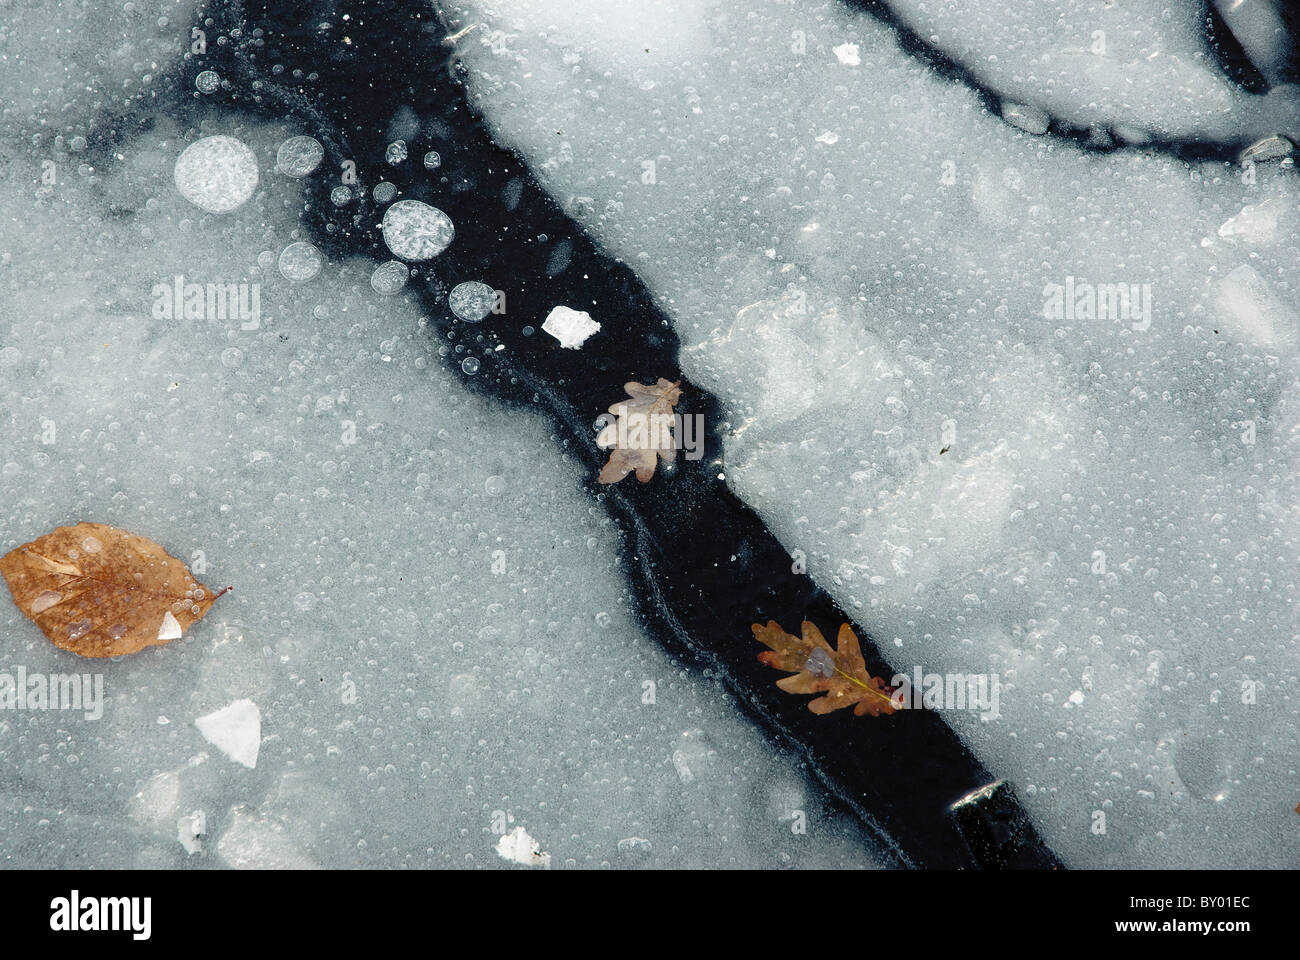 Leaves frozen into iced up up pond in winter Stock Photo